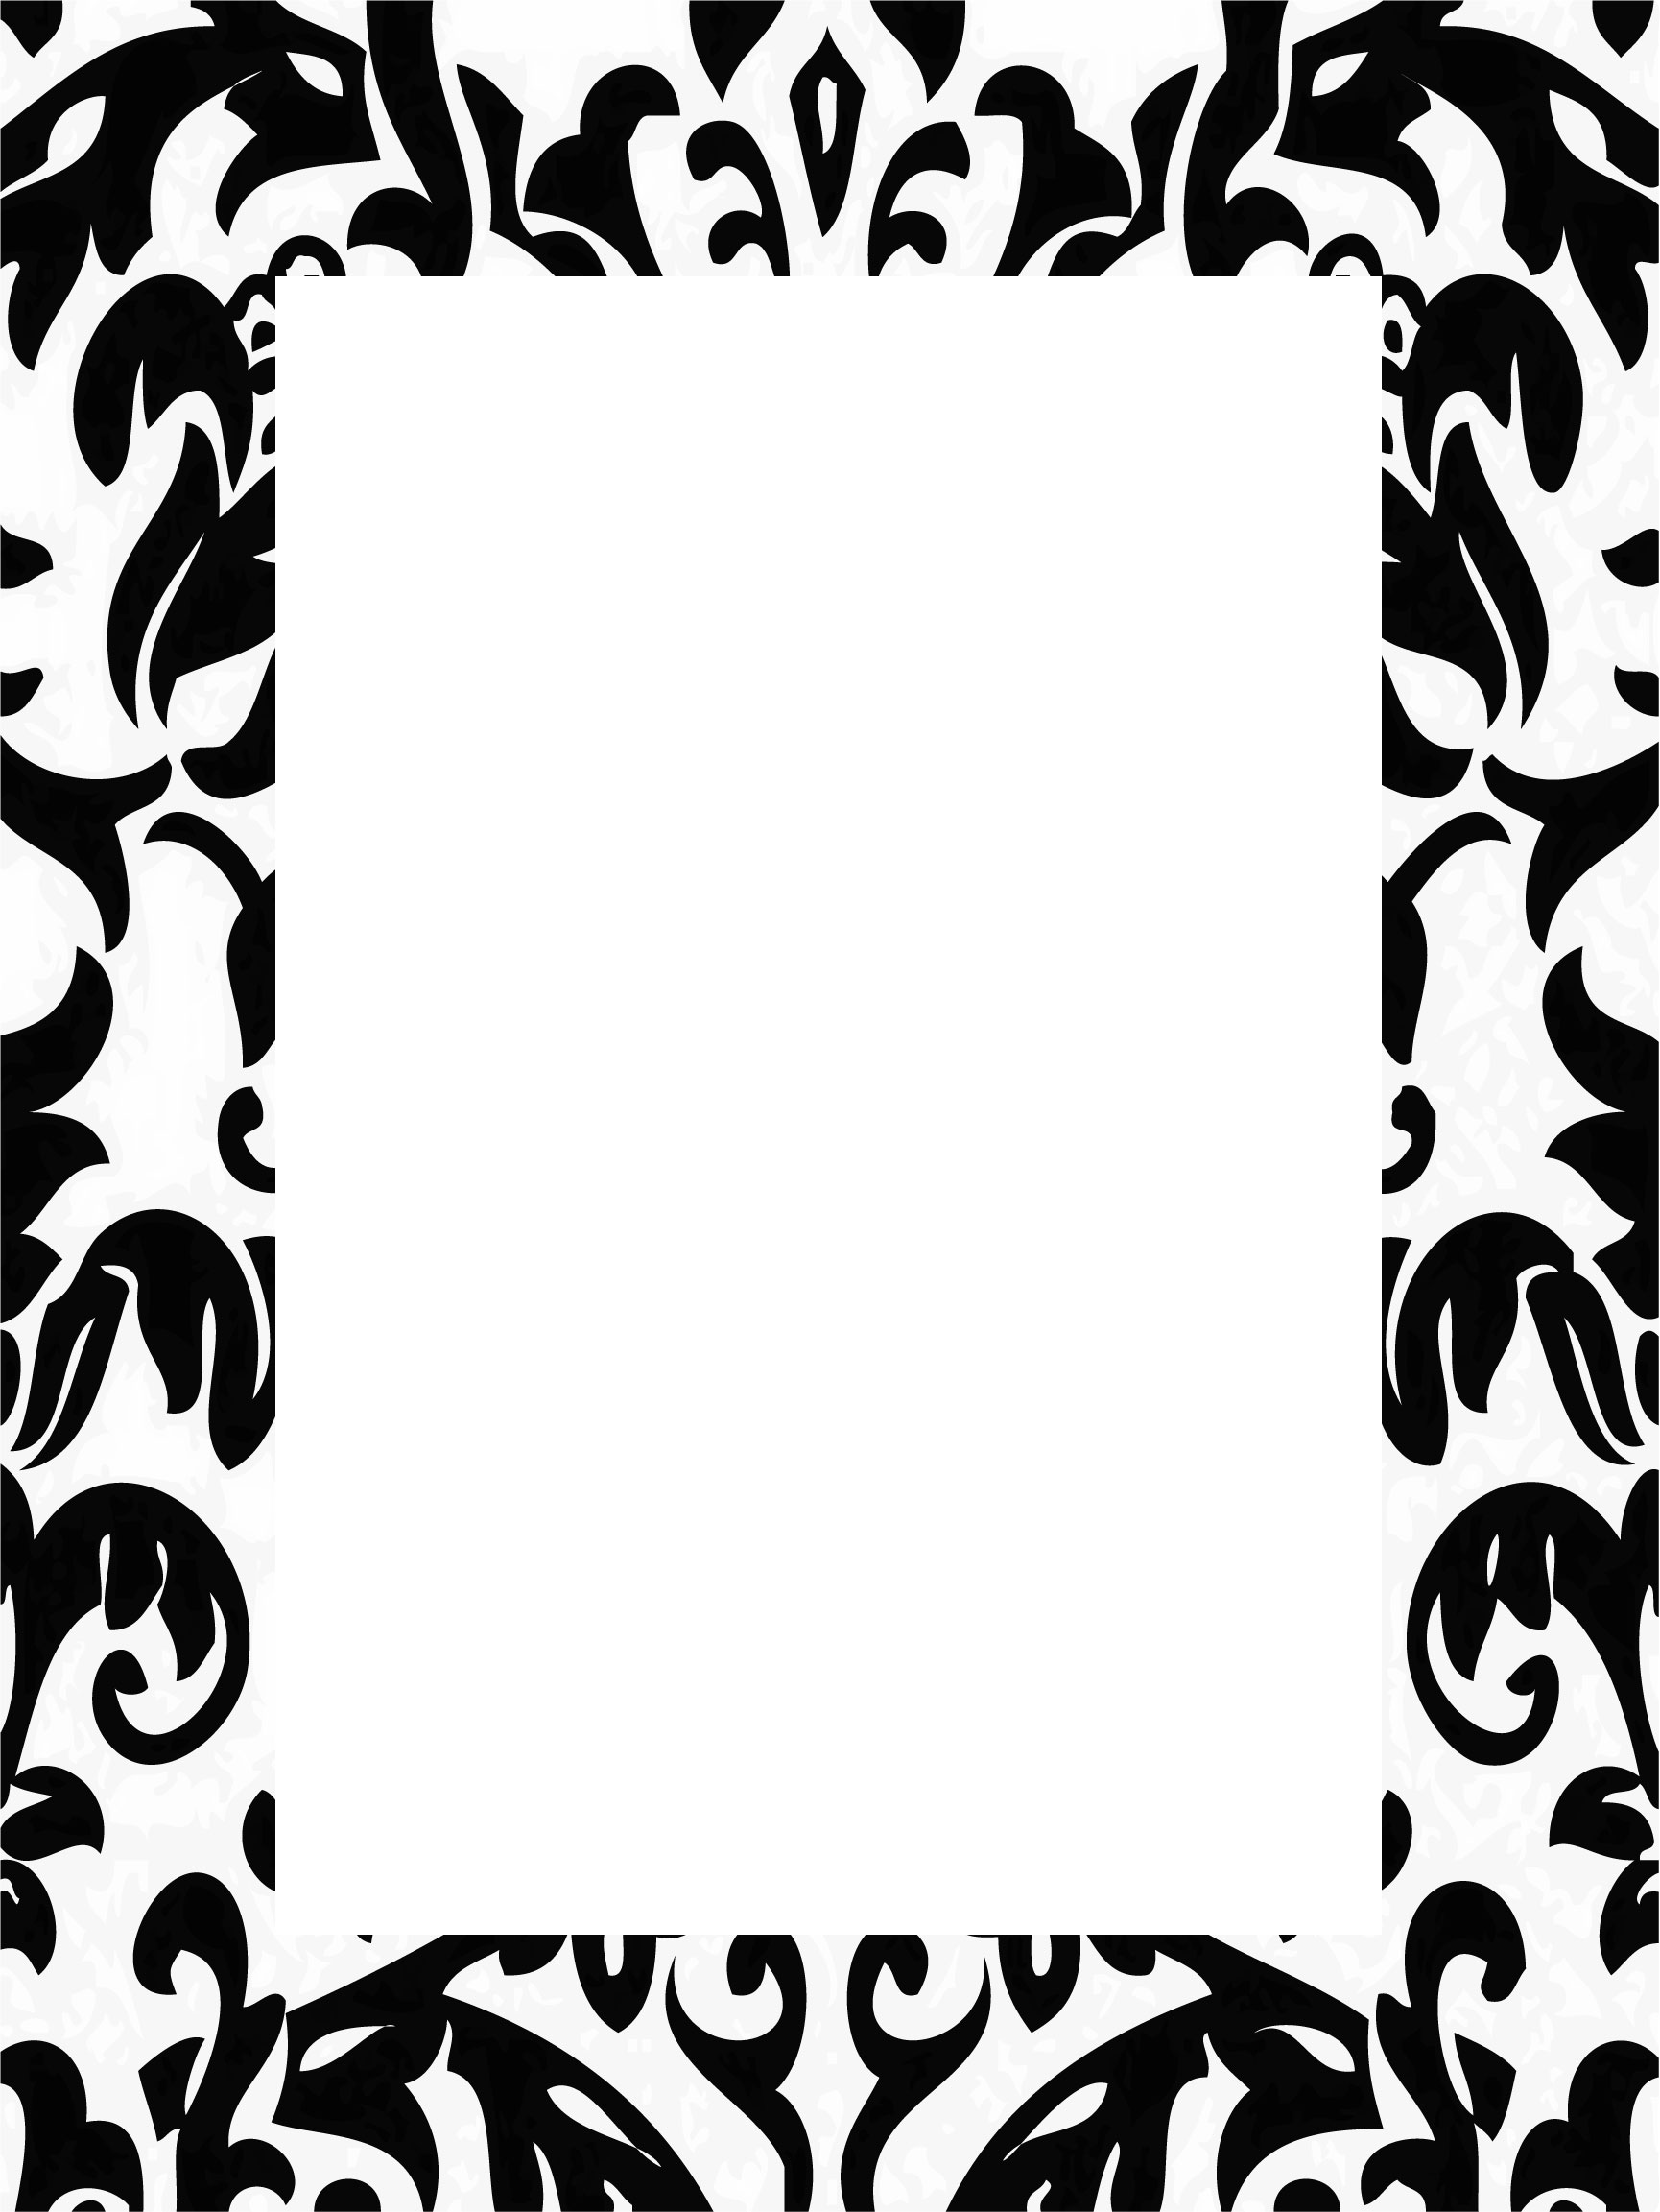 Black and white damask clipart border free svg freeuse stock Black Damask Border svg freeuse stock